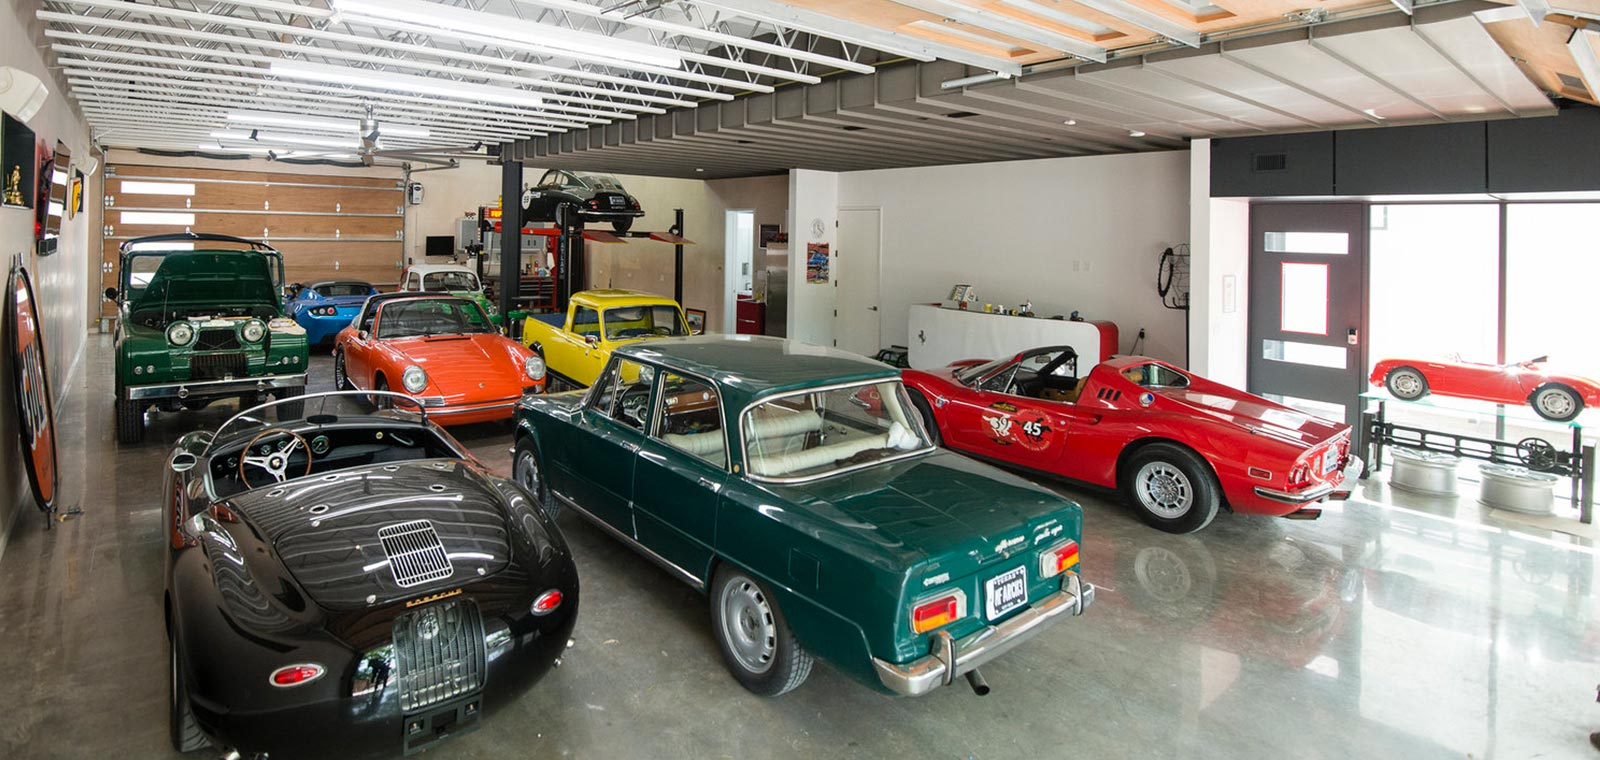 Austin home designed to showcase the owners' vintage car collection